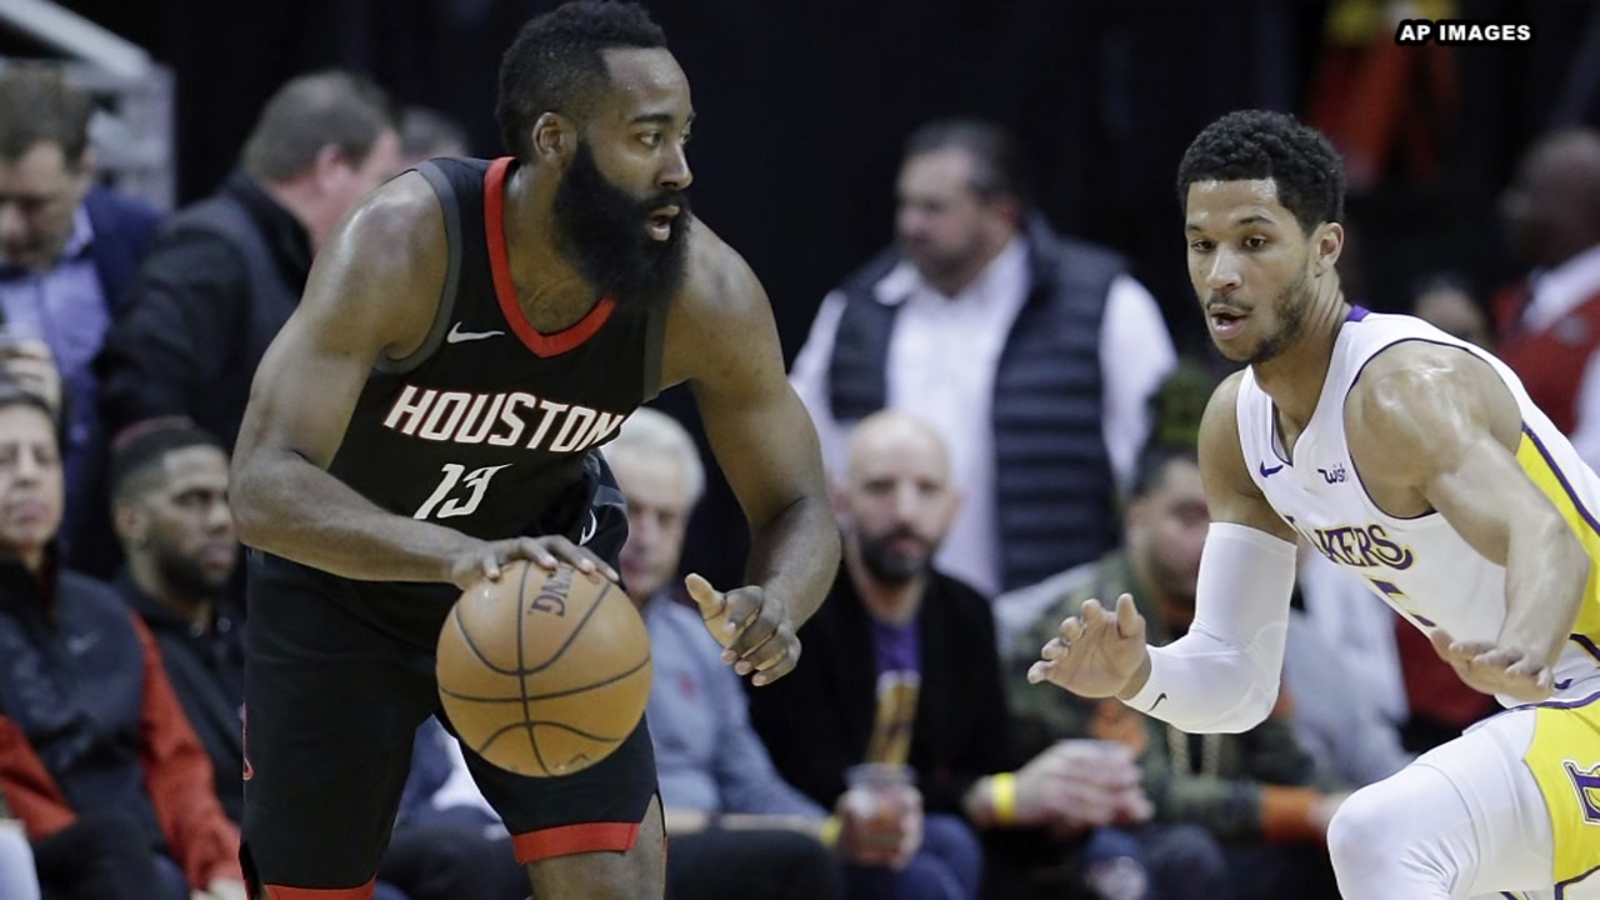 b556443b7537 James Harden to miss at least 2 weeks after hamstring strain